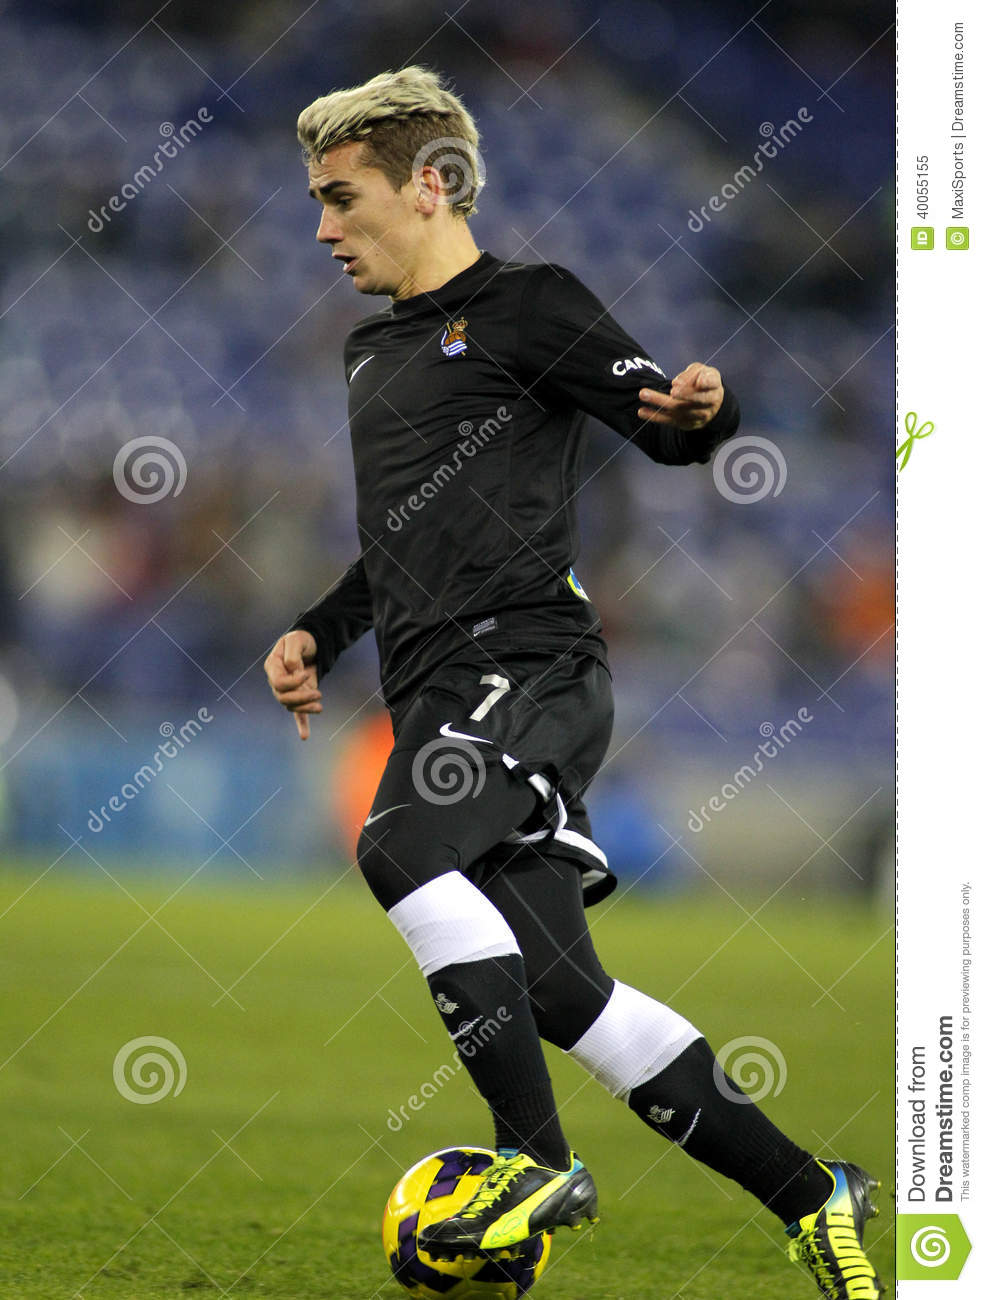 official photos 1bb4b 505cb Antoine Griezmann Of Real Sociedad Editorial Image - Image ...